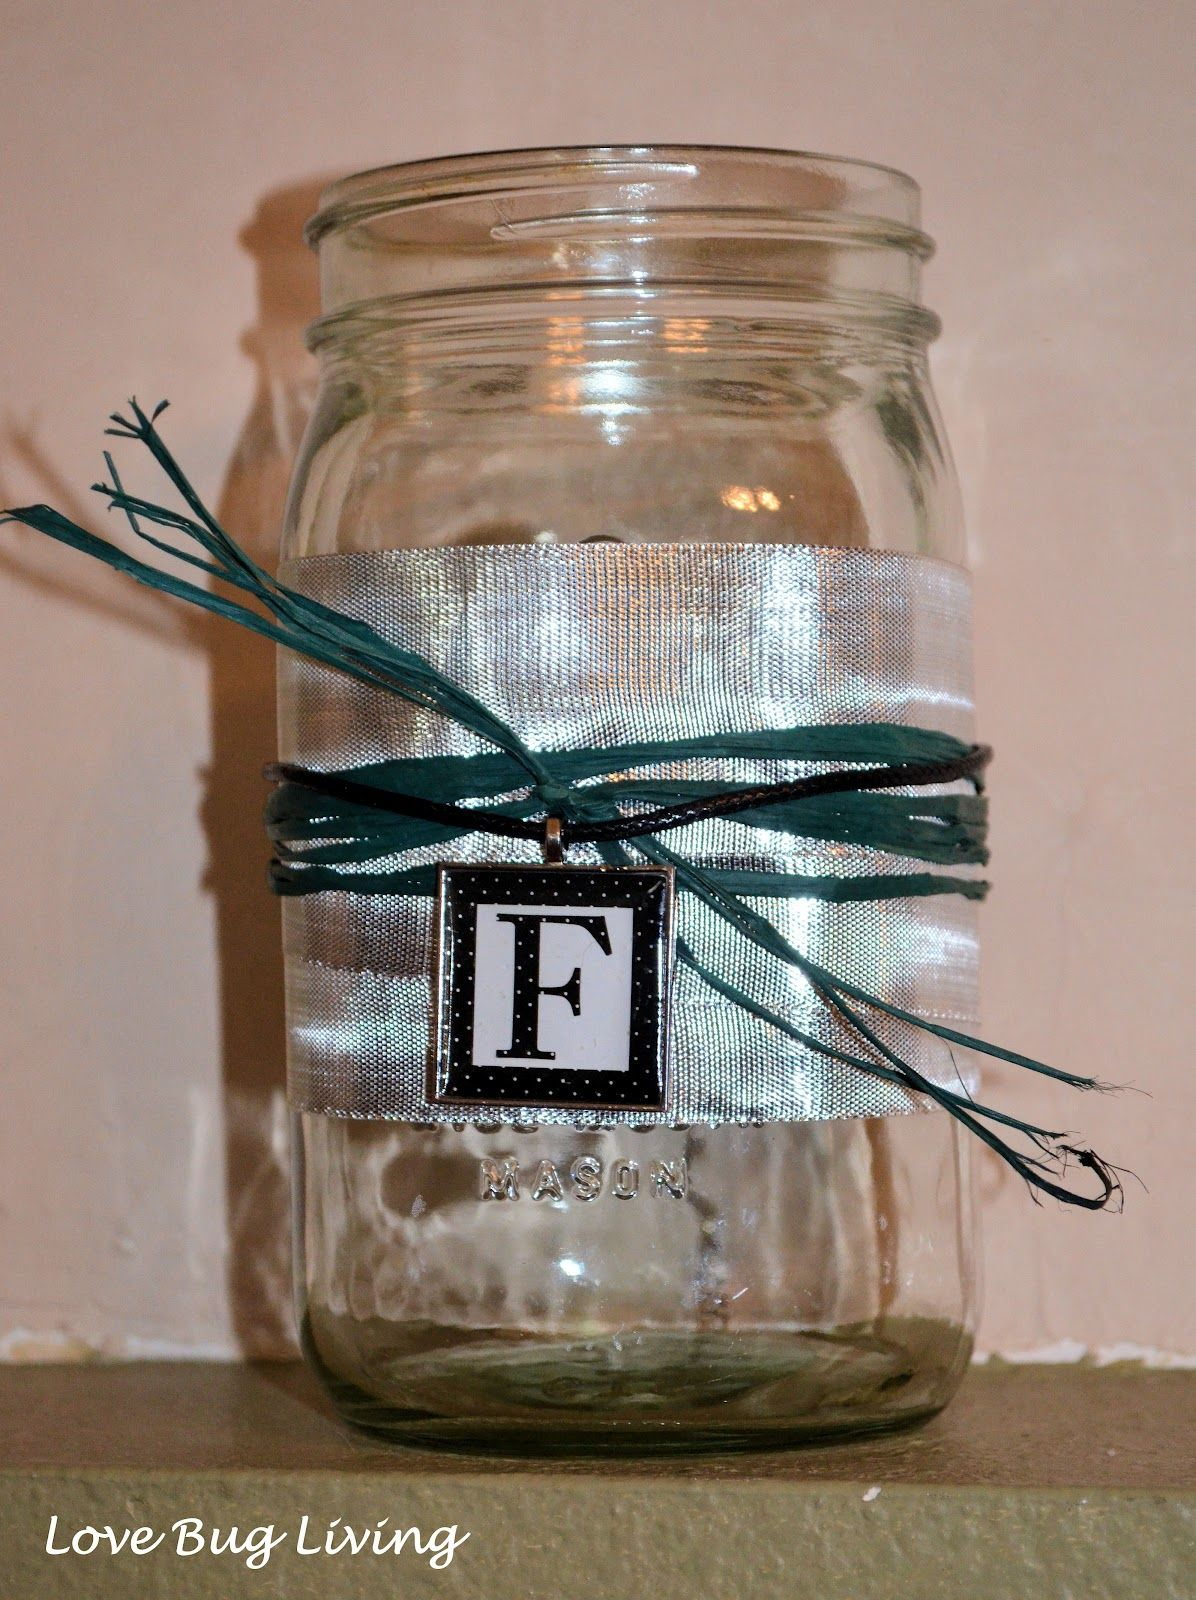 Wedding Shower Gift: Mason Jar Bouquet Holder | Wedding ...